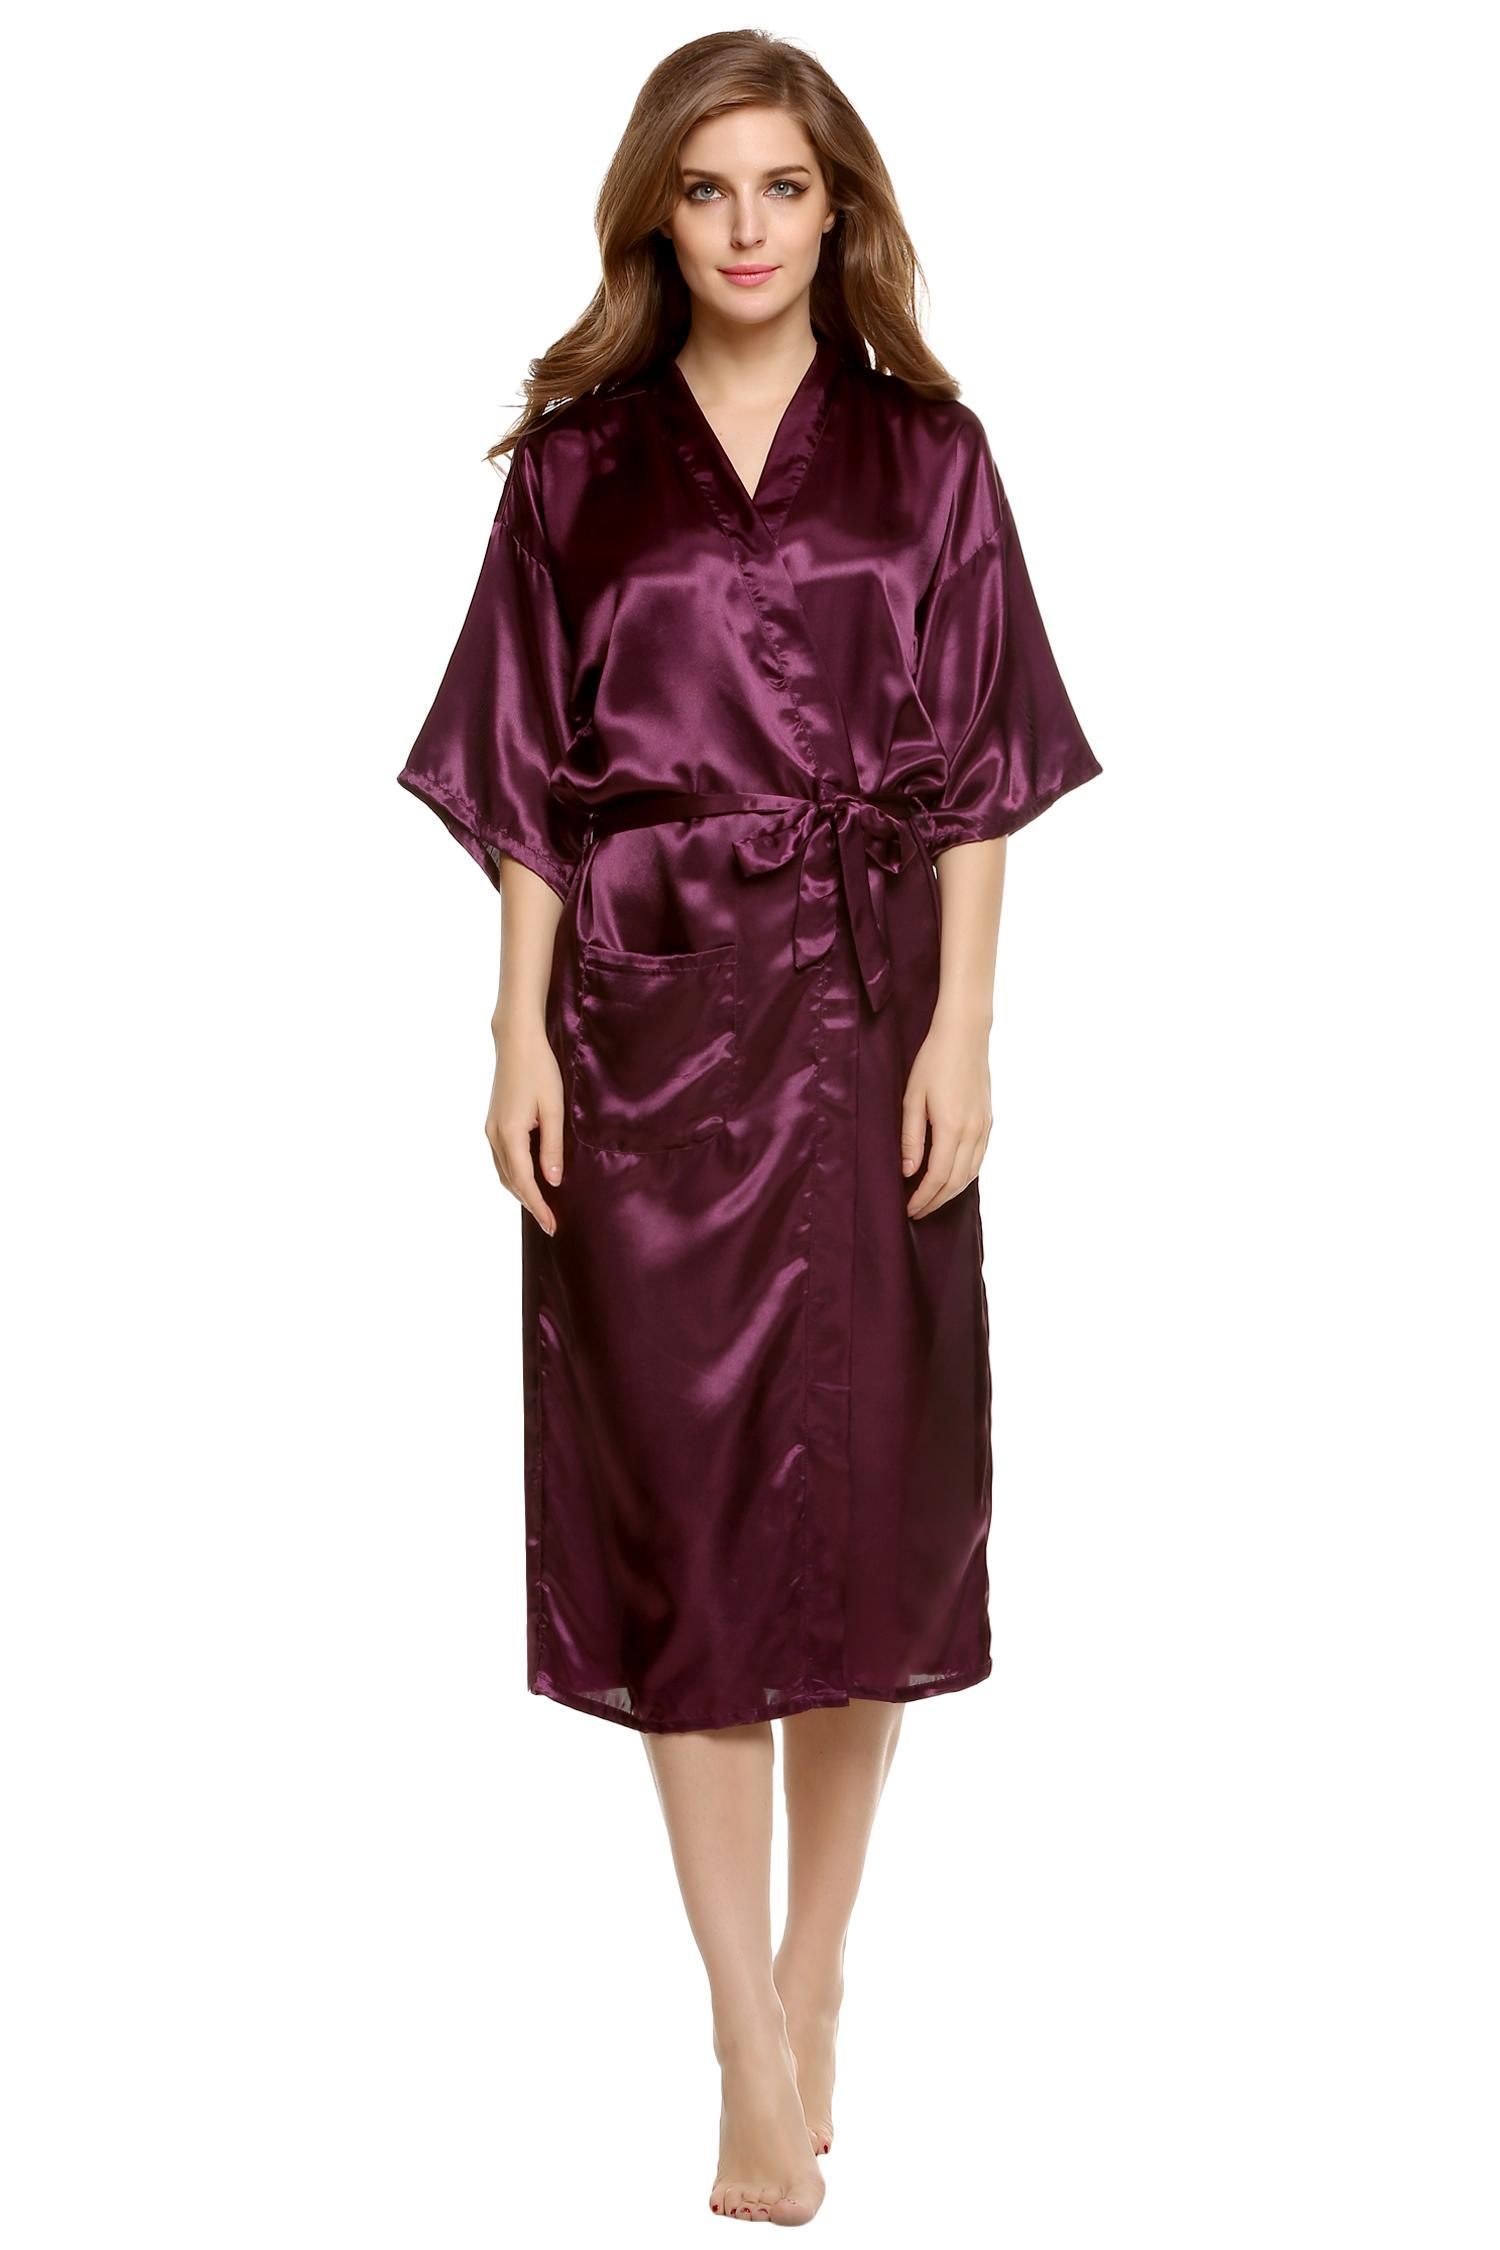 Free shipping and returns on Women's Nightgowns & Nightshirts Sleepwear, Lounge & Robes at specialisedsteels.tk